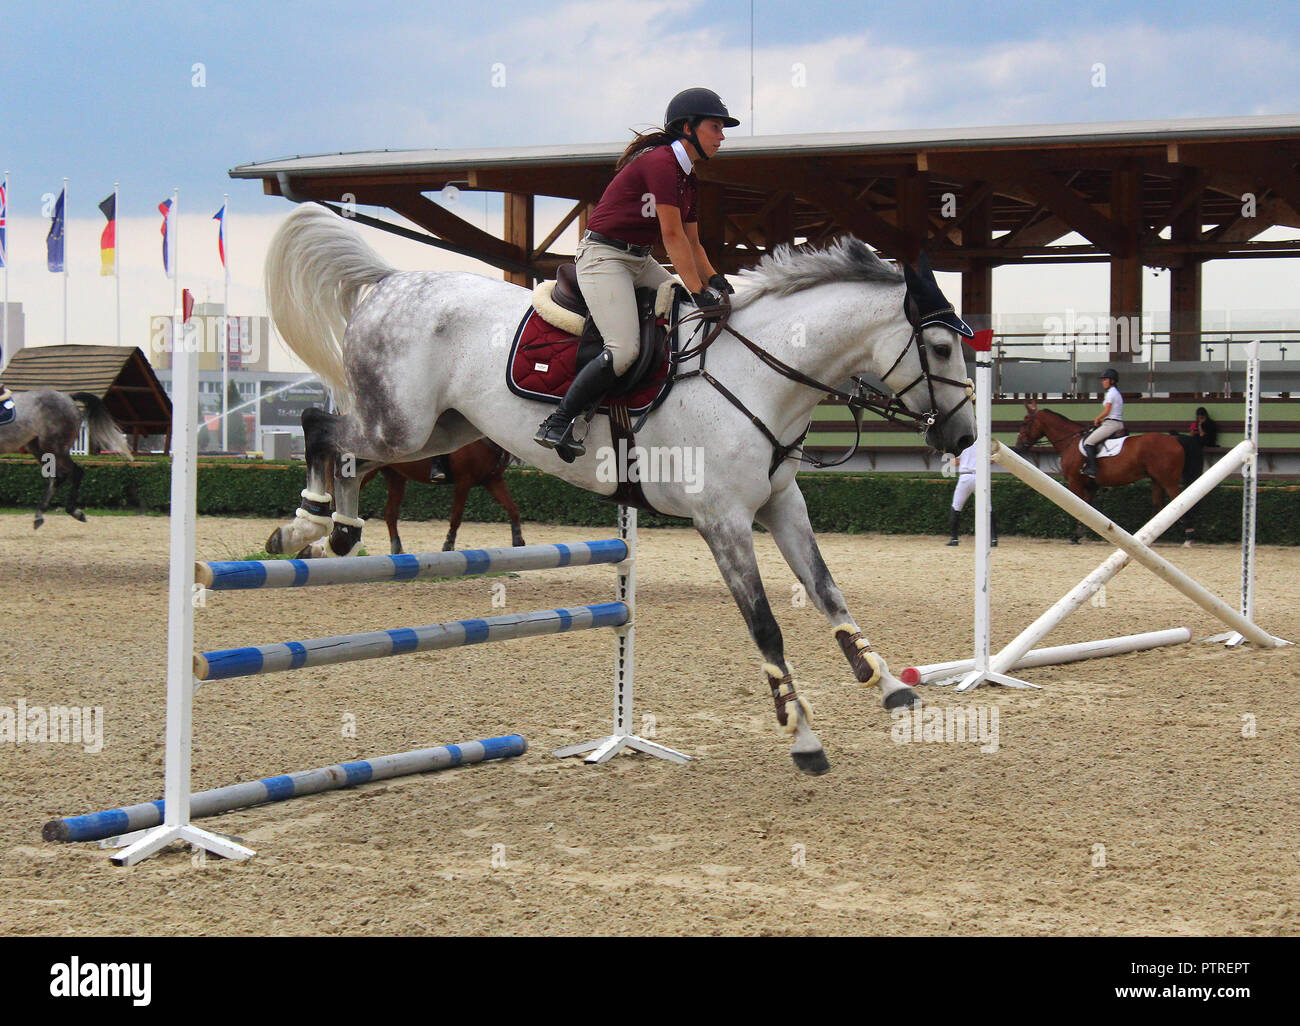 Show Jumping Training Female Rider On A White Horse Jumping Through A Barrier Stock Photo Alamy